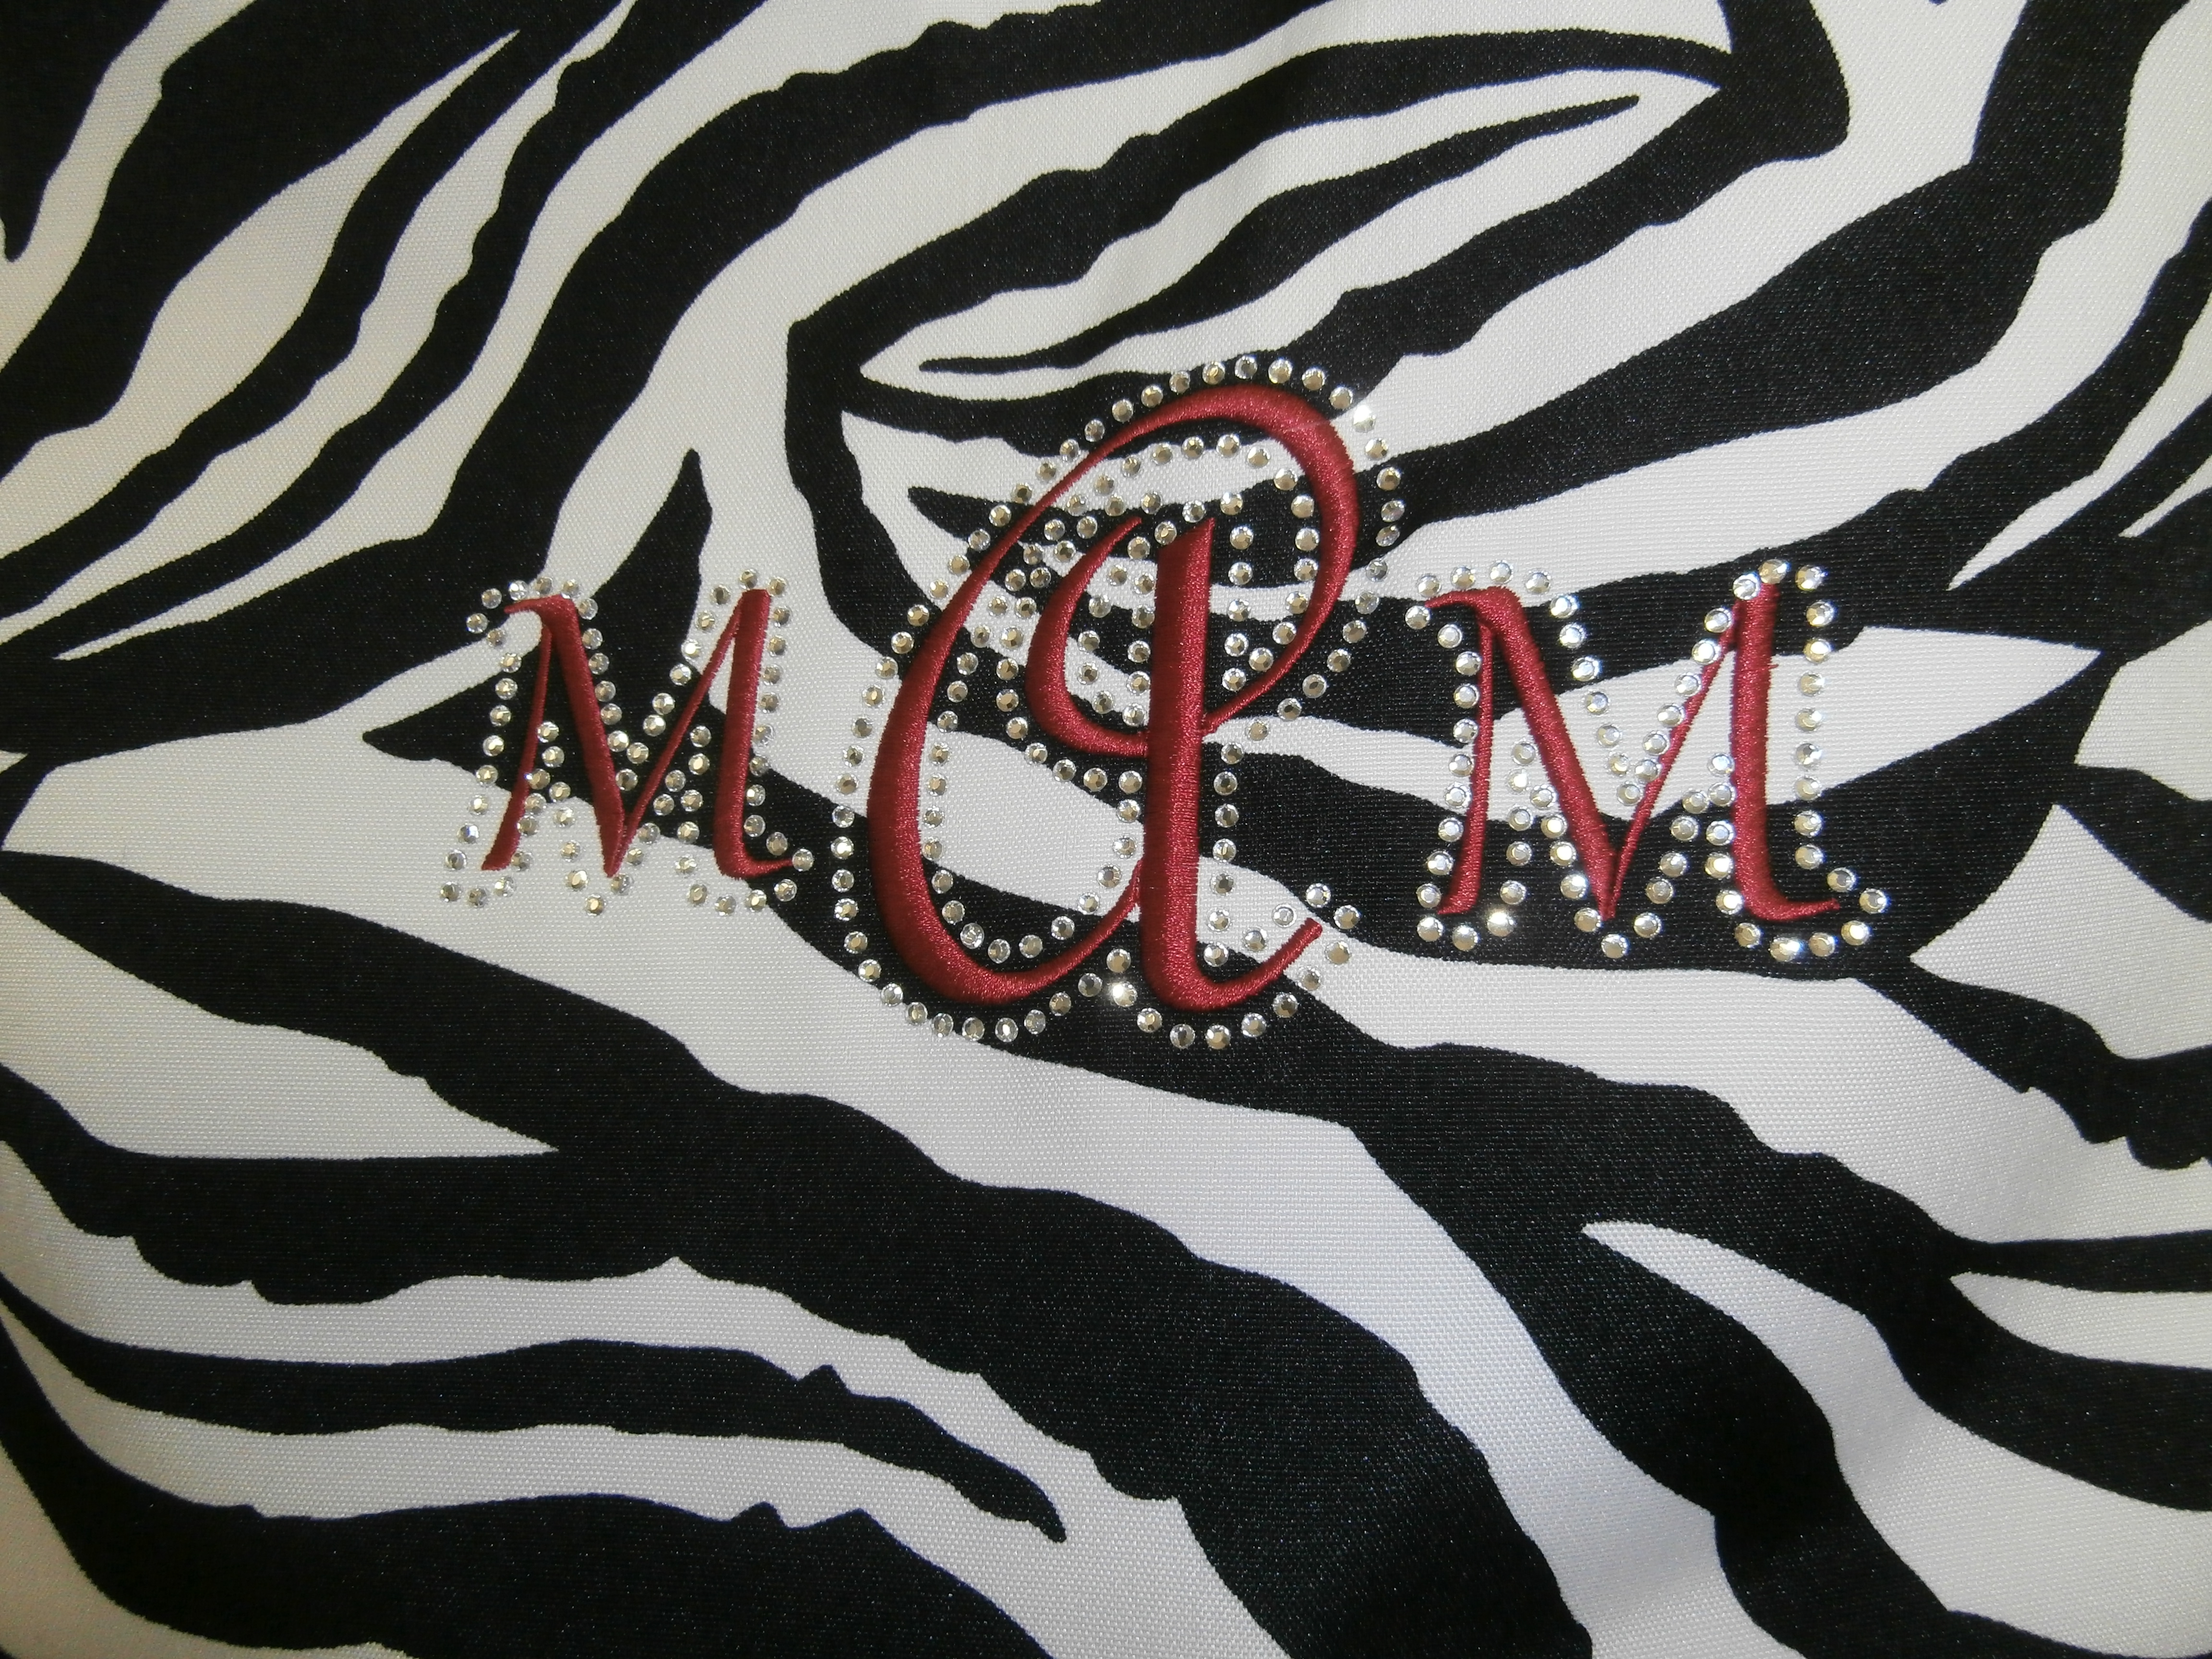 Machine Embroidery FYI | Sew Vac Outlet (Humble Sewing Center) Blog